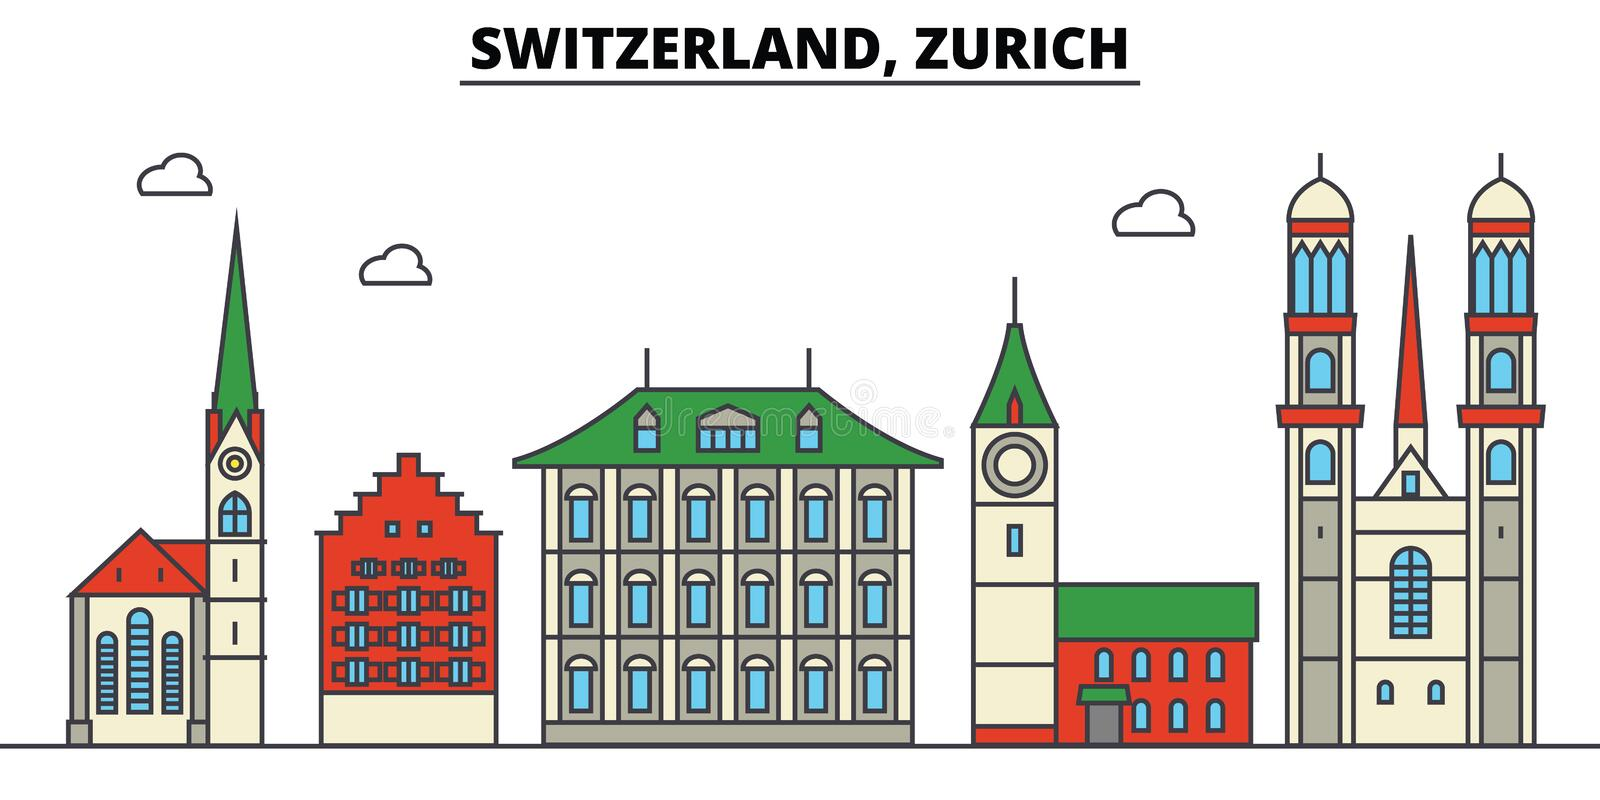 Switzerland, Zurich. City skyline architecture . Editable royalty free illustration